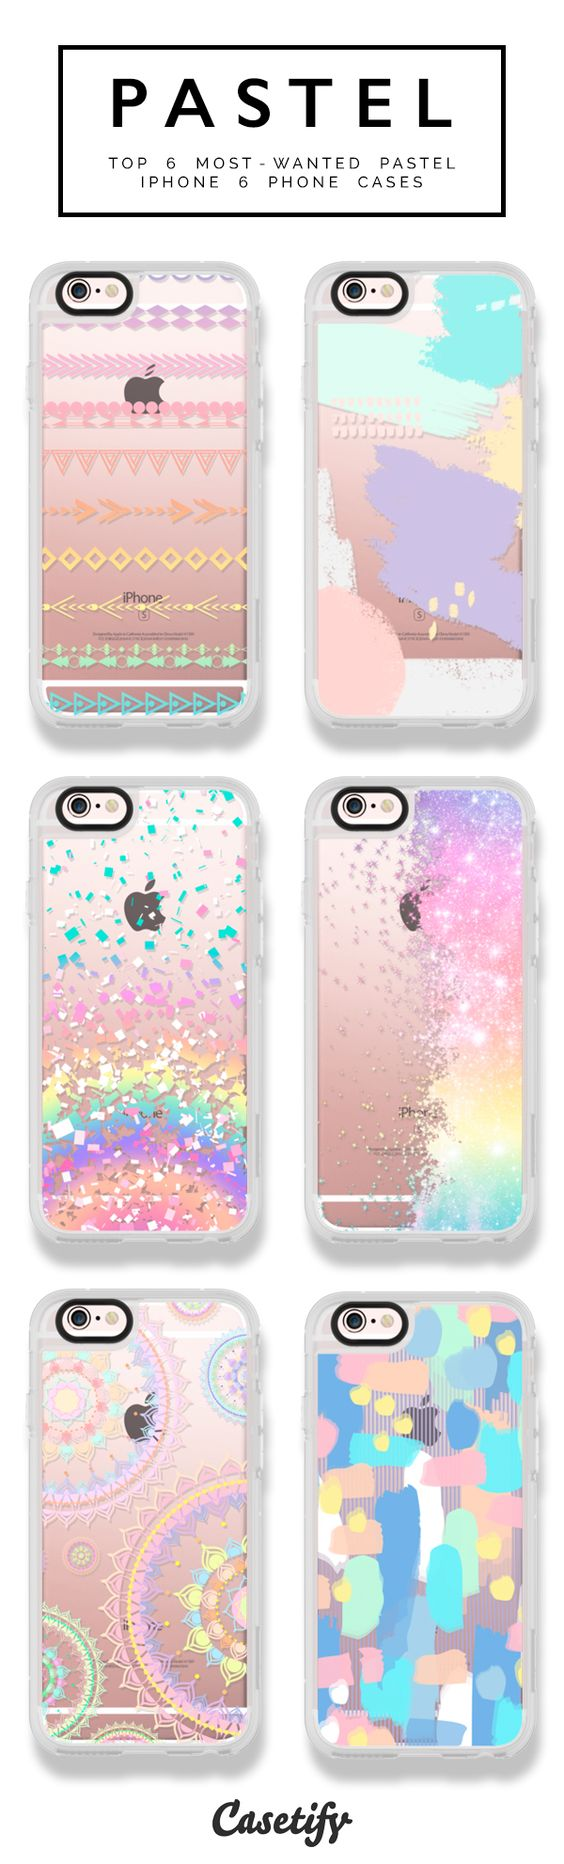 6 most wanted pastel iPhone 6 phone cases | Click through to shop   #phonecase #protective #color #palette | @Casetify